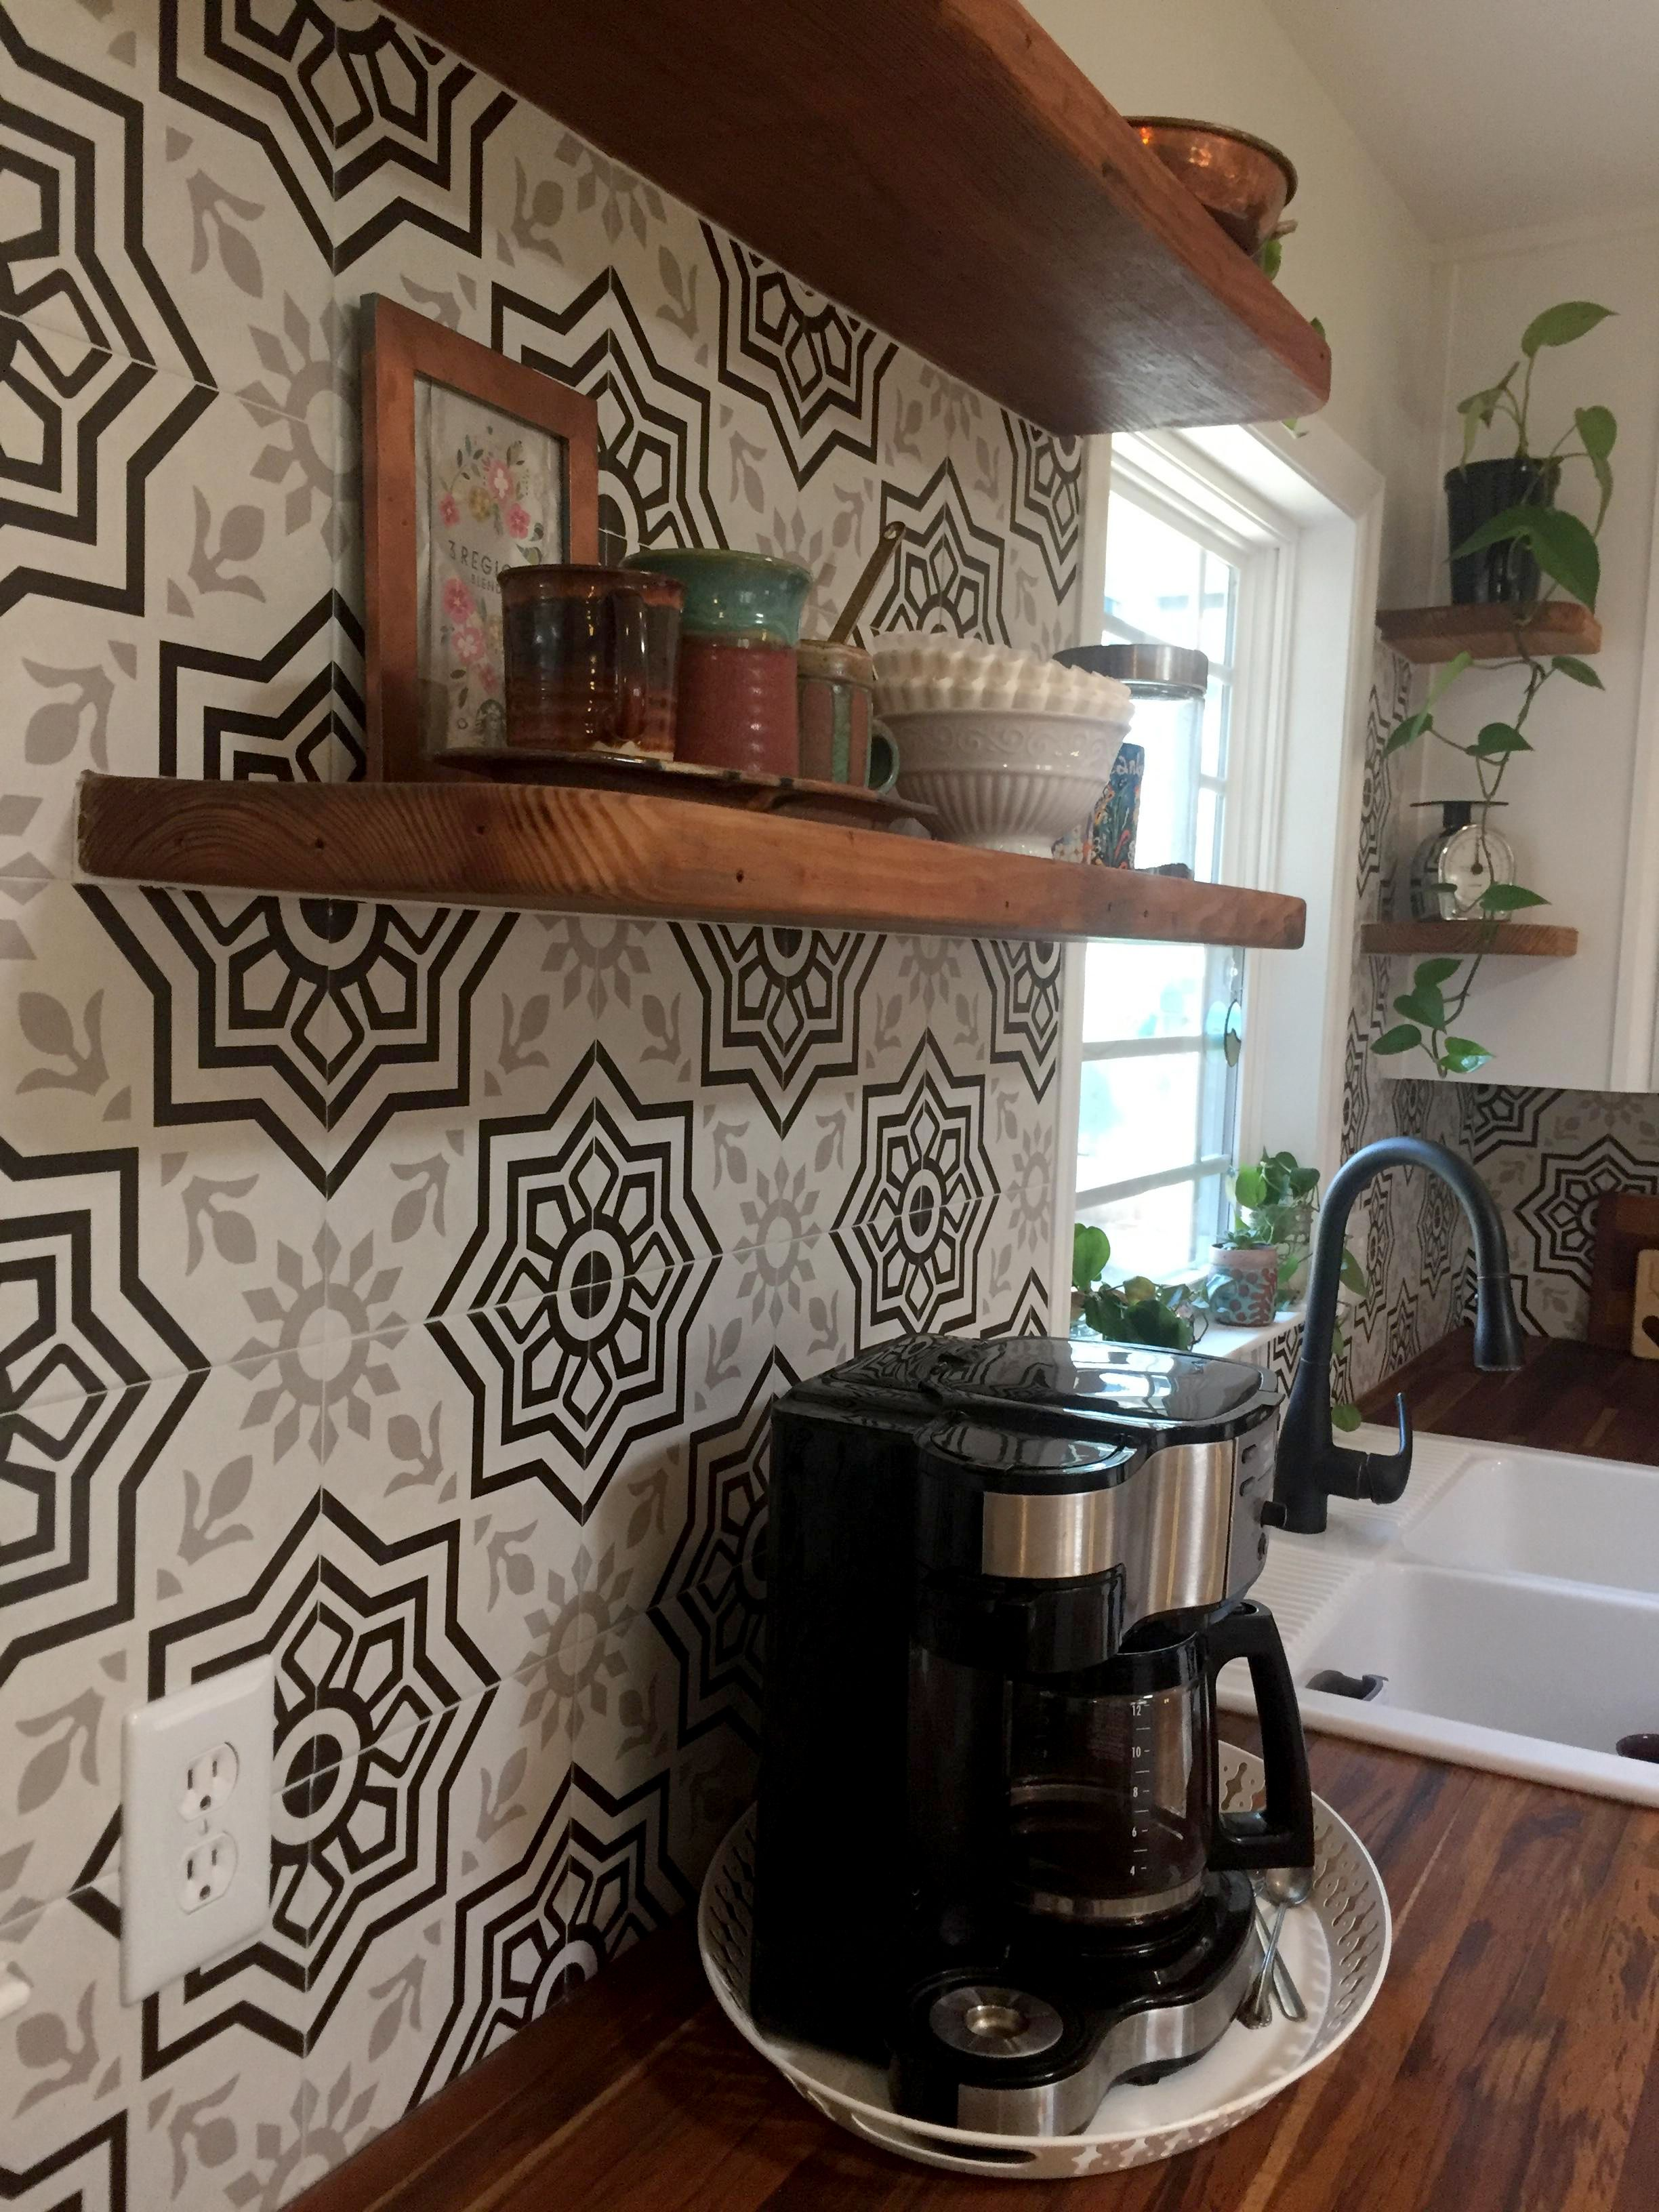 Photo Contest Kitchen Remodel Sent In By Carly C Of Raleigh Nc I Used The Bien Ceramic Tile They Loo Prairie Style Windows Ceramic Tiles Home Improvement